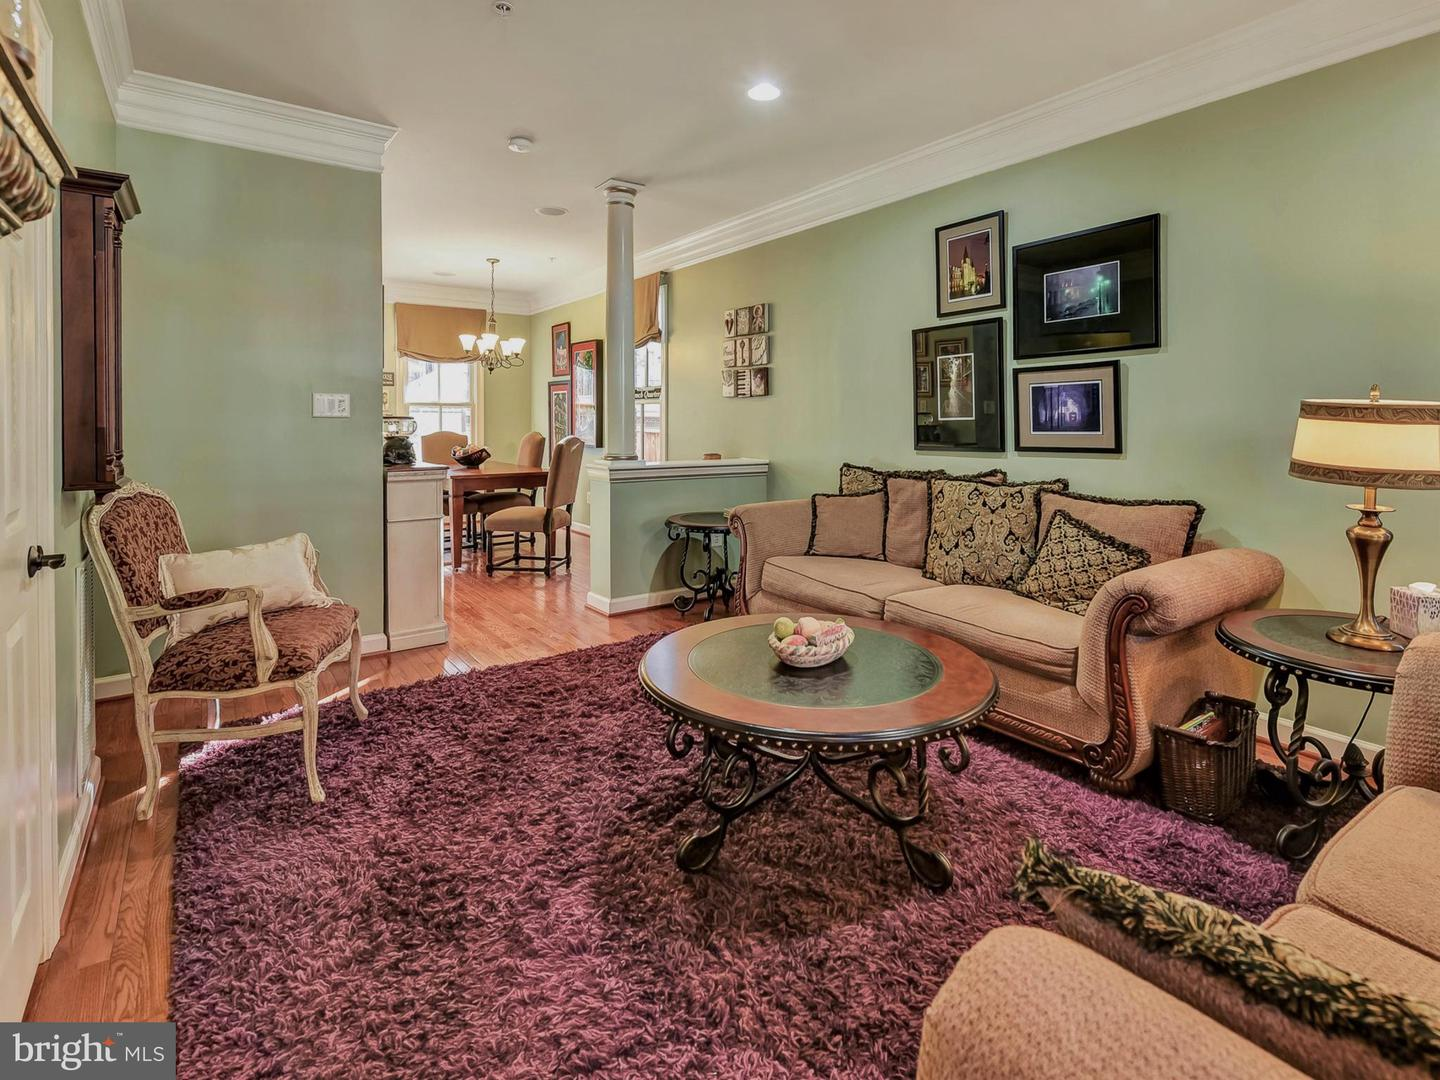 Additional photo for property listing at 30 E 5th St E #4 Frederick, Maryland 21701 United States